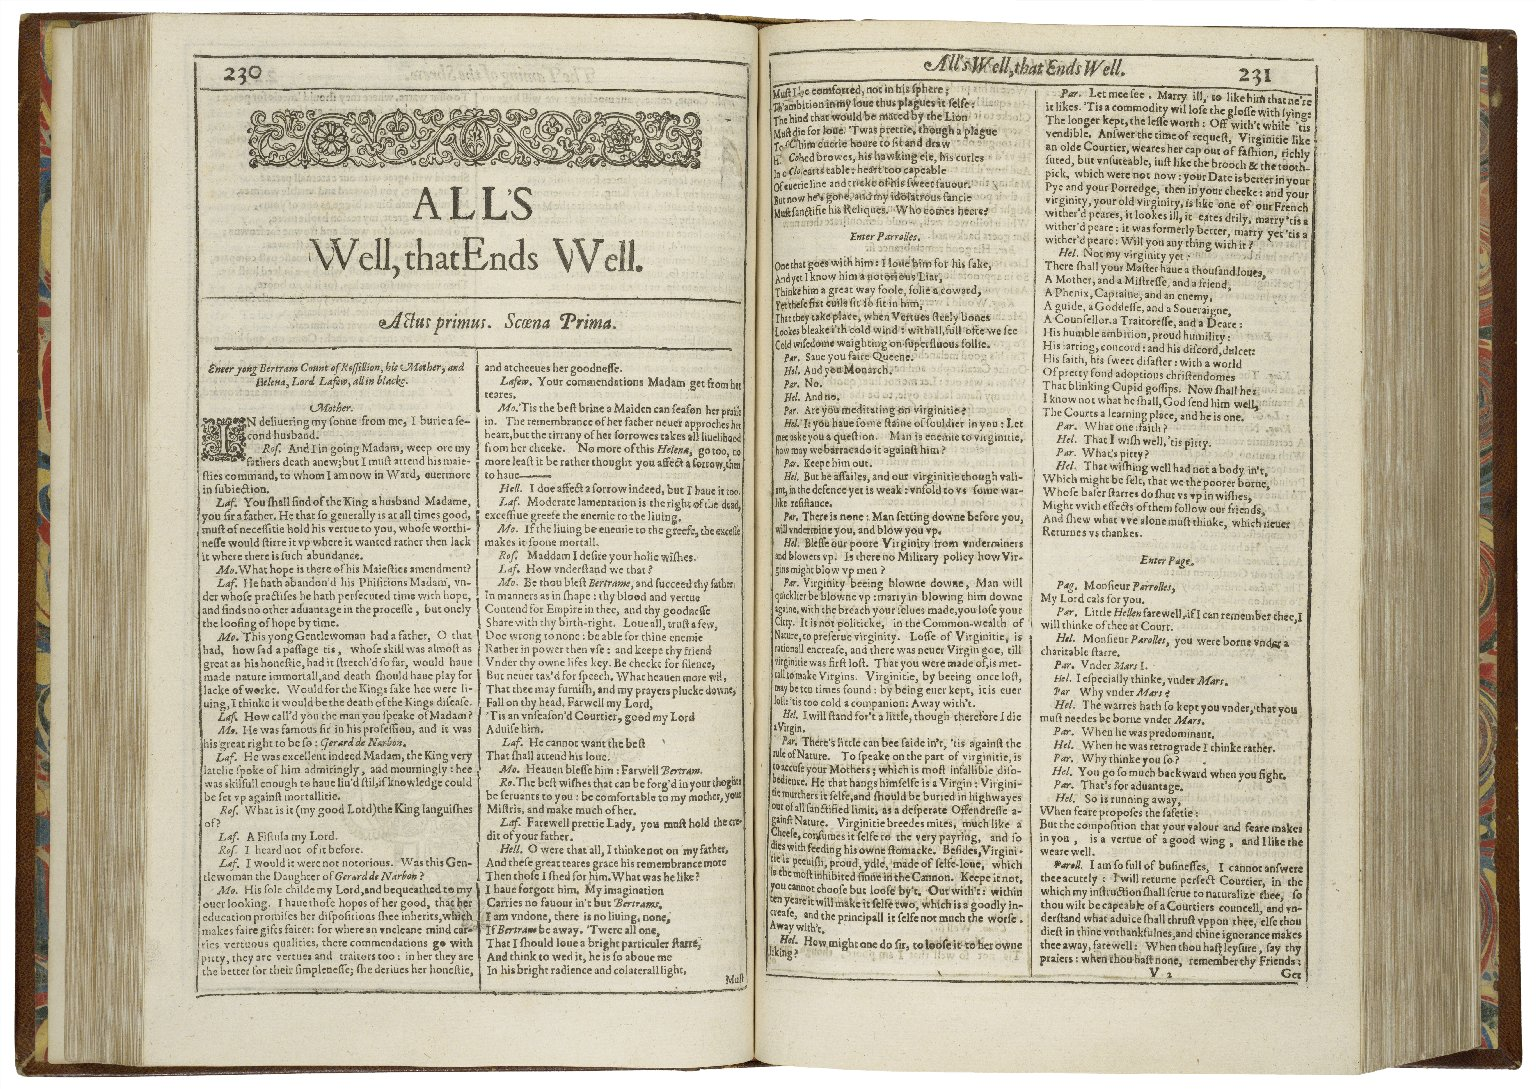 opening pages of the First Folio edition of All's Well That Ends Well